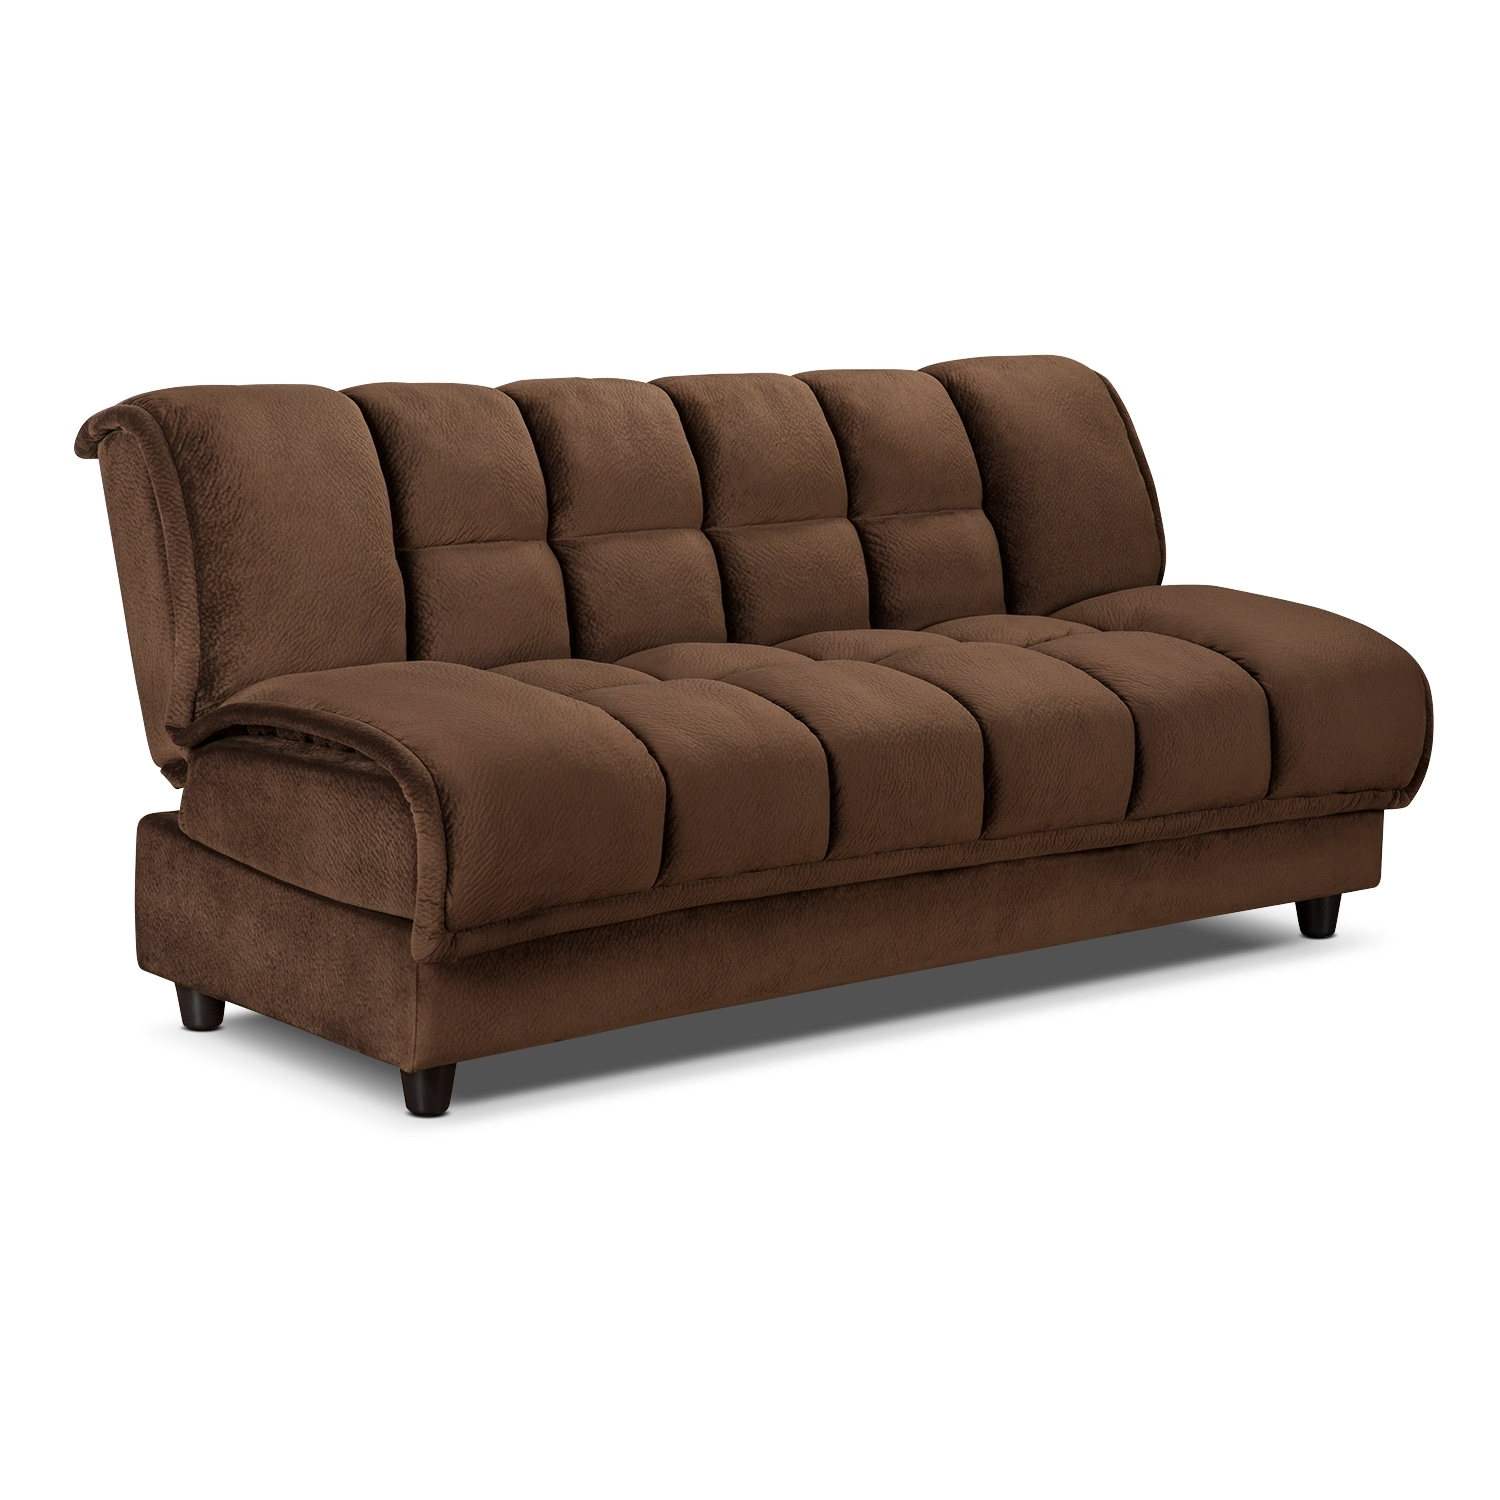 Sofa Bed sleeper sofas | value city furniture | value city furniture